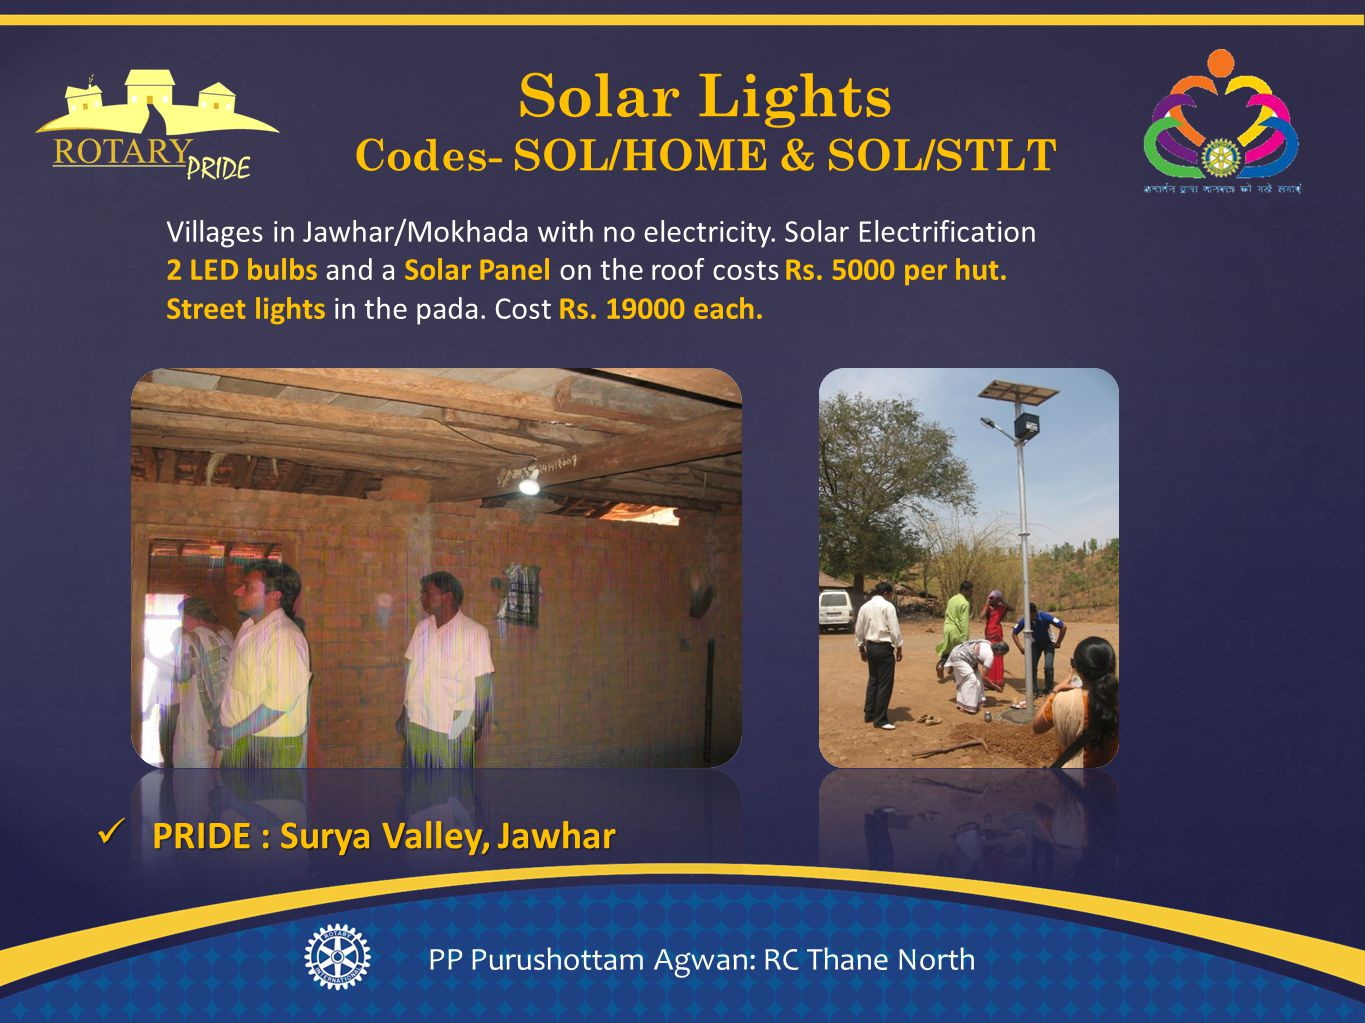 Solar Lights Codes- SOL/HOME & SOL/STLT PP Purushottam Agwan: RC Thane North Villages in Jawhar/Mokhada with no electricity.